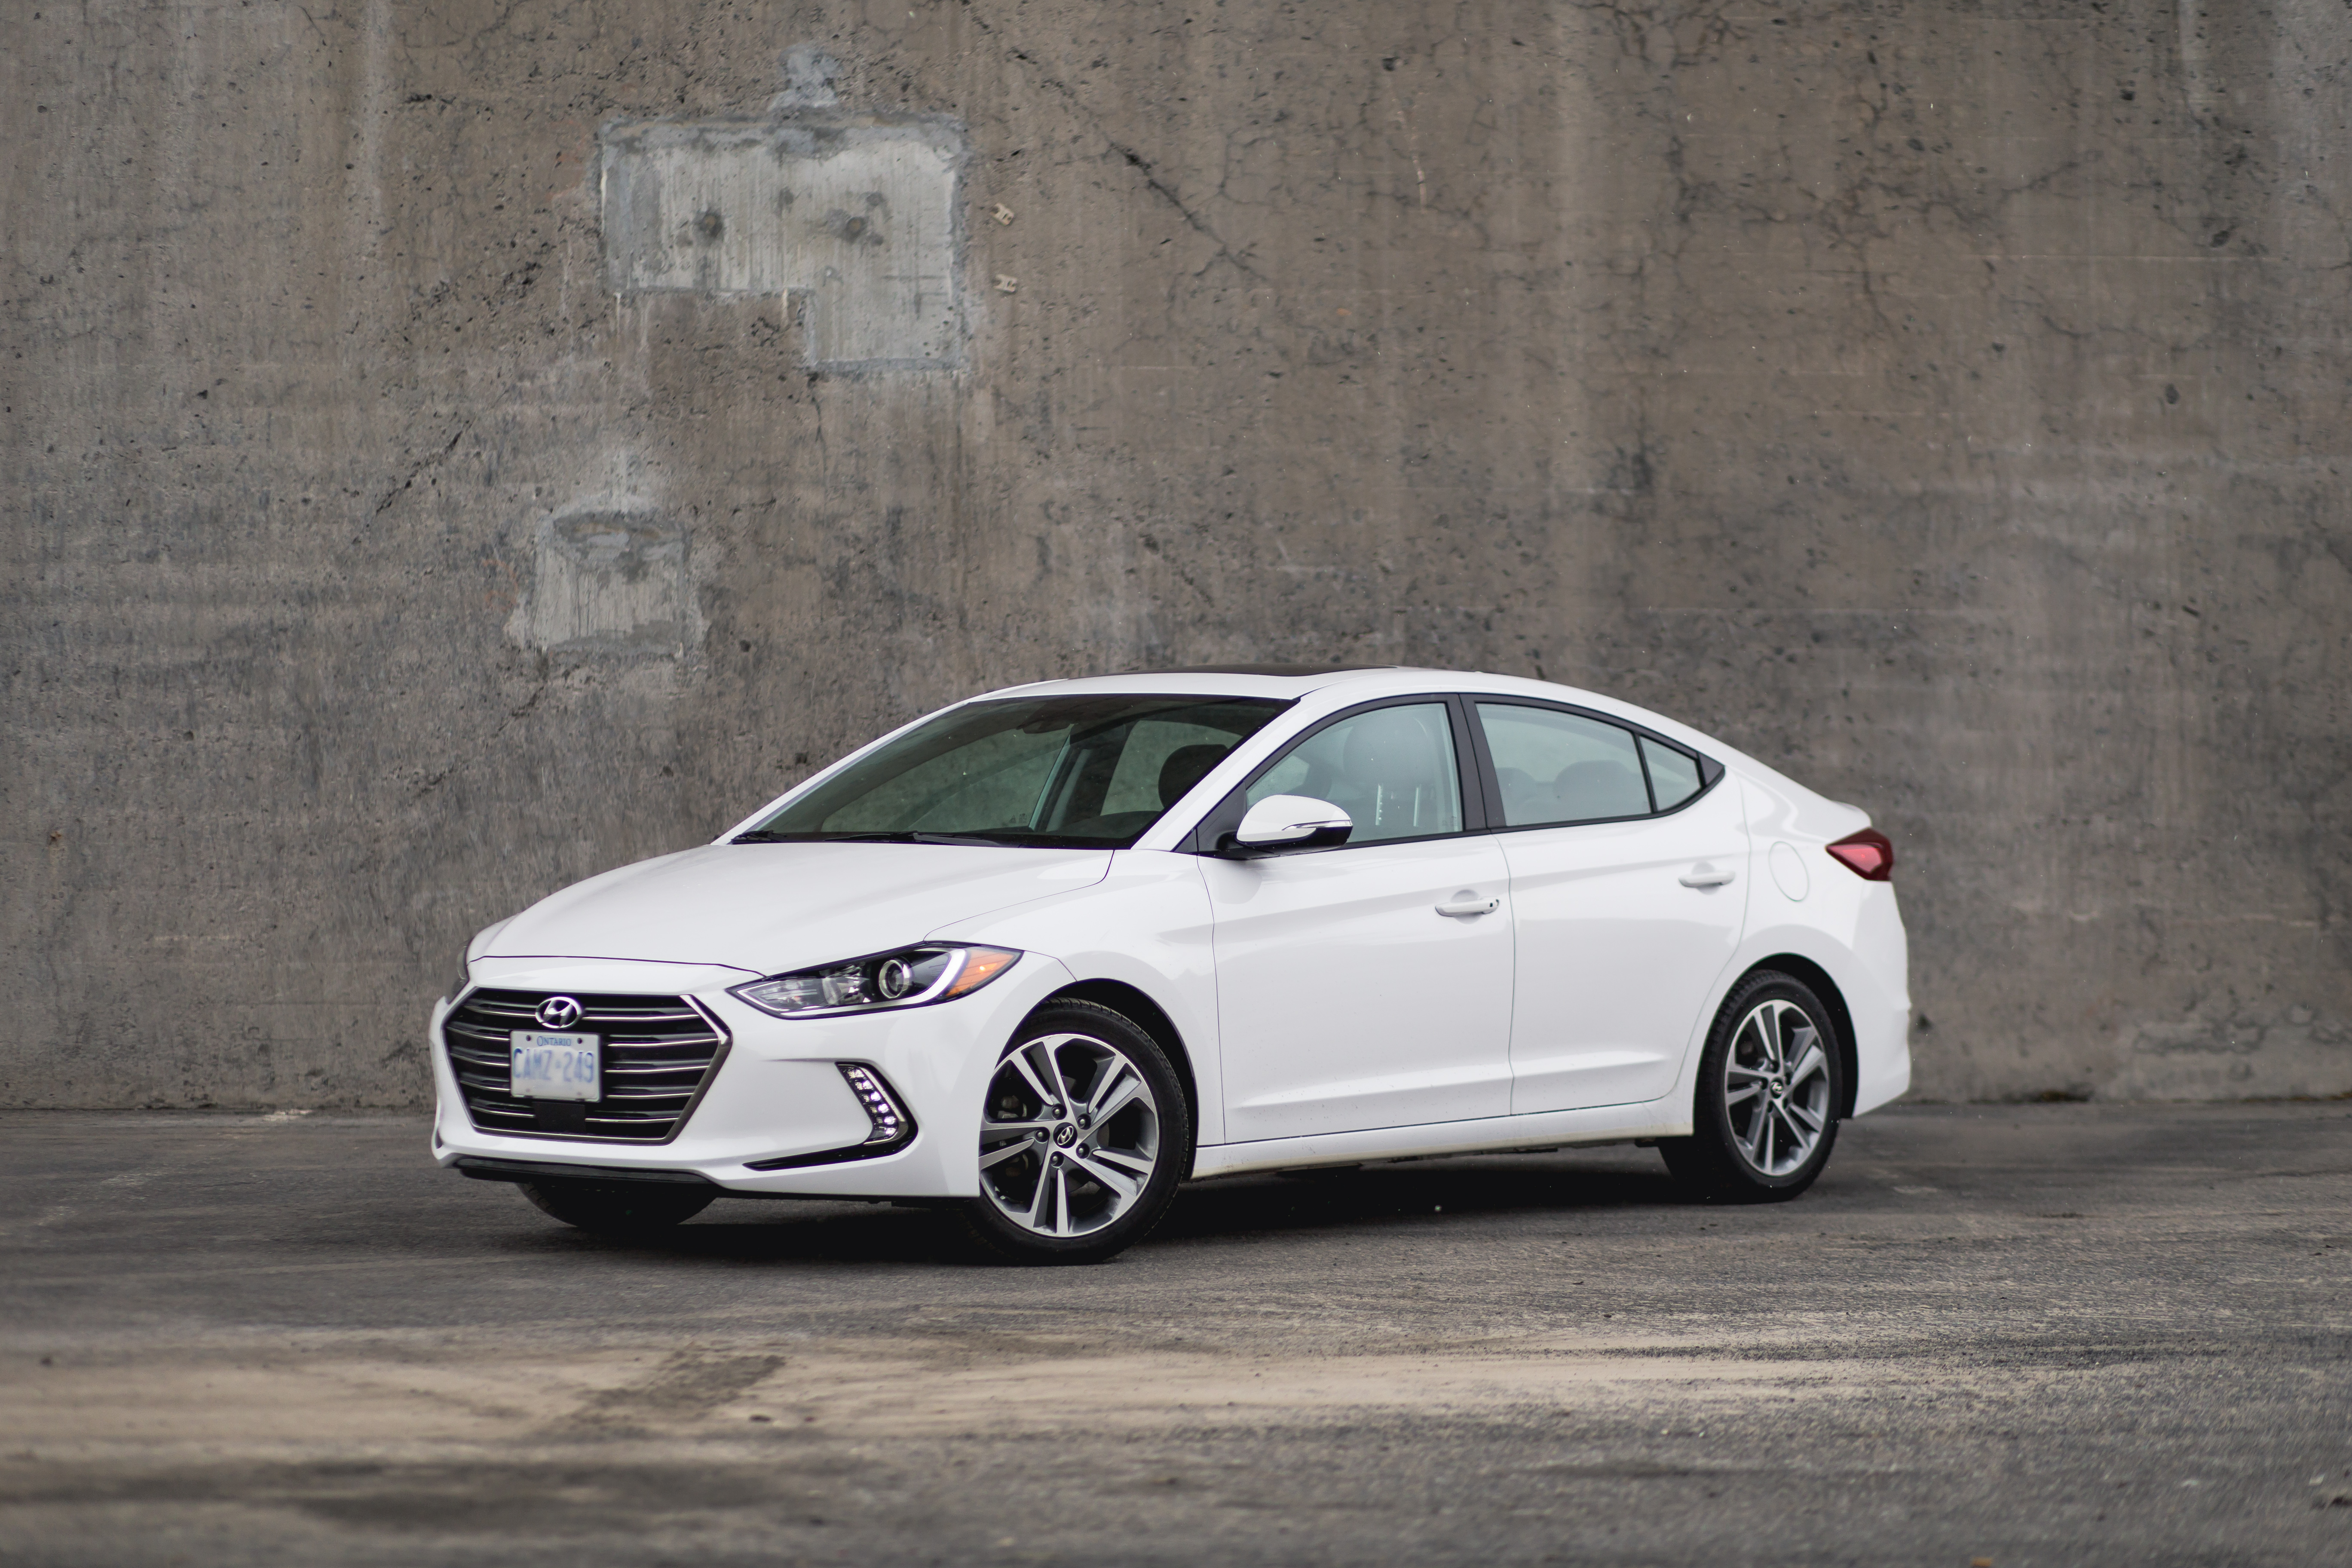 Everyone The Hyundai Elantra Is A Great Little Car Right Foot Down